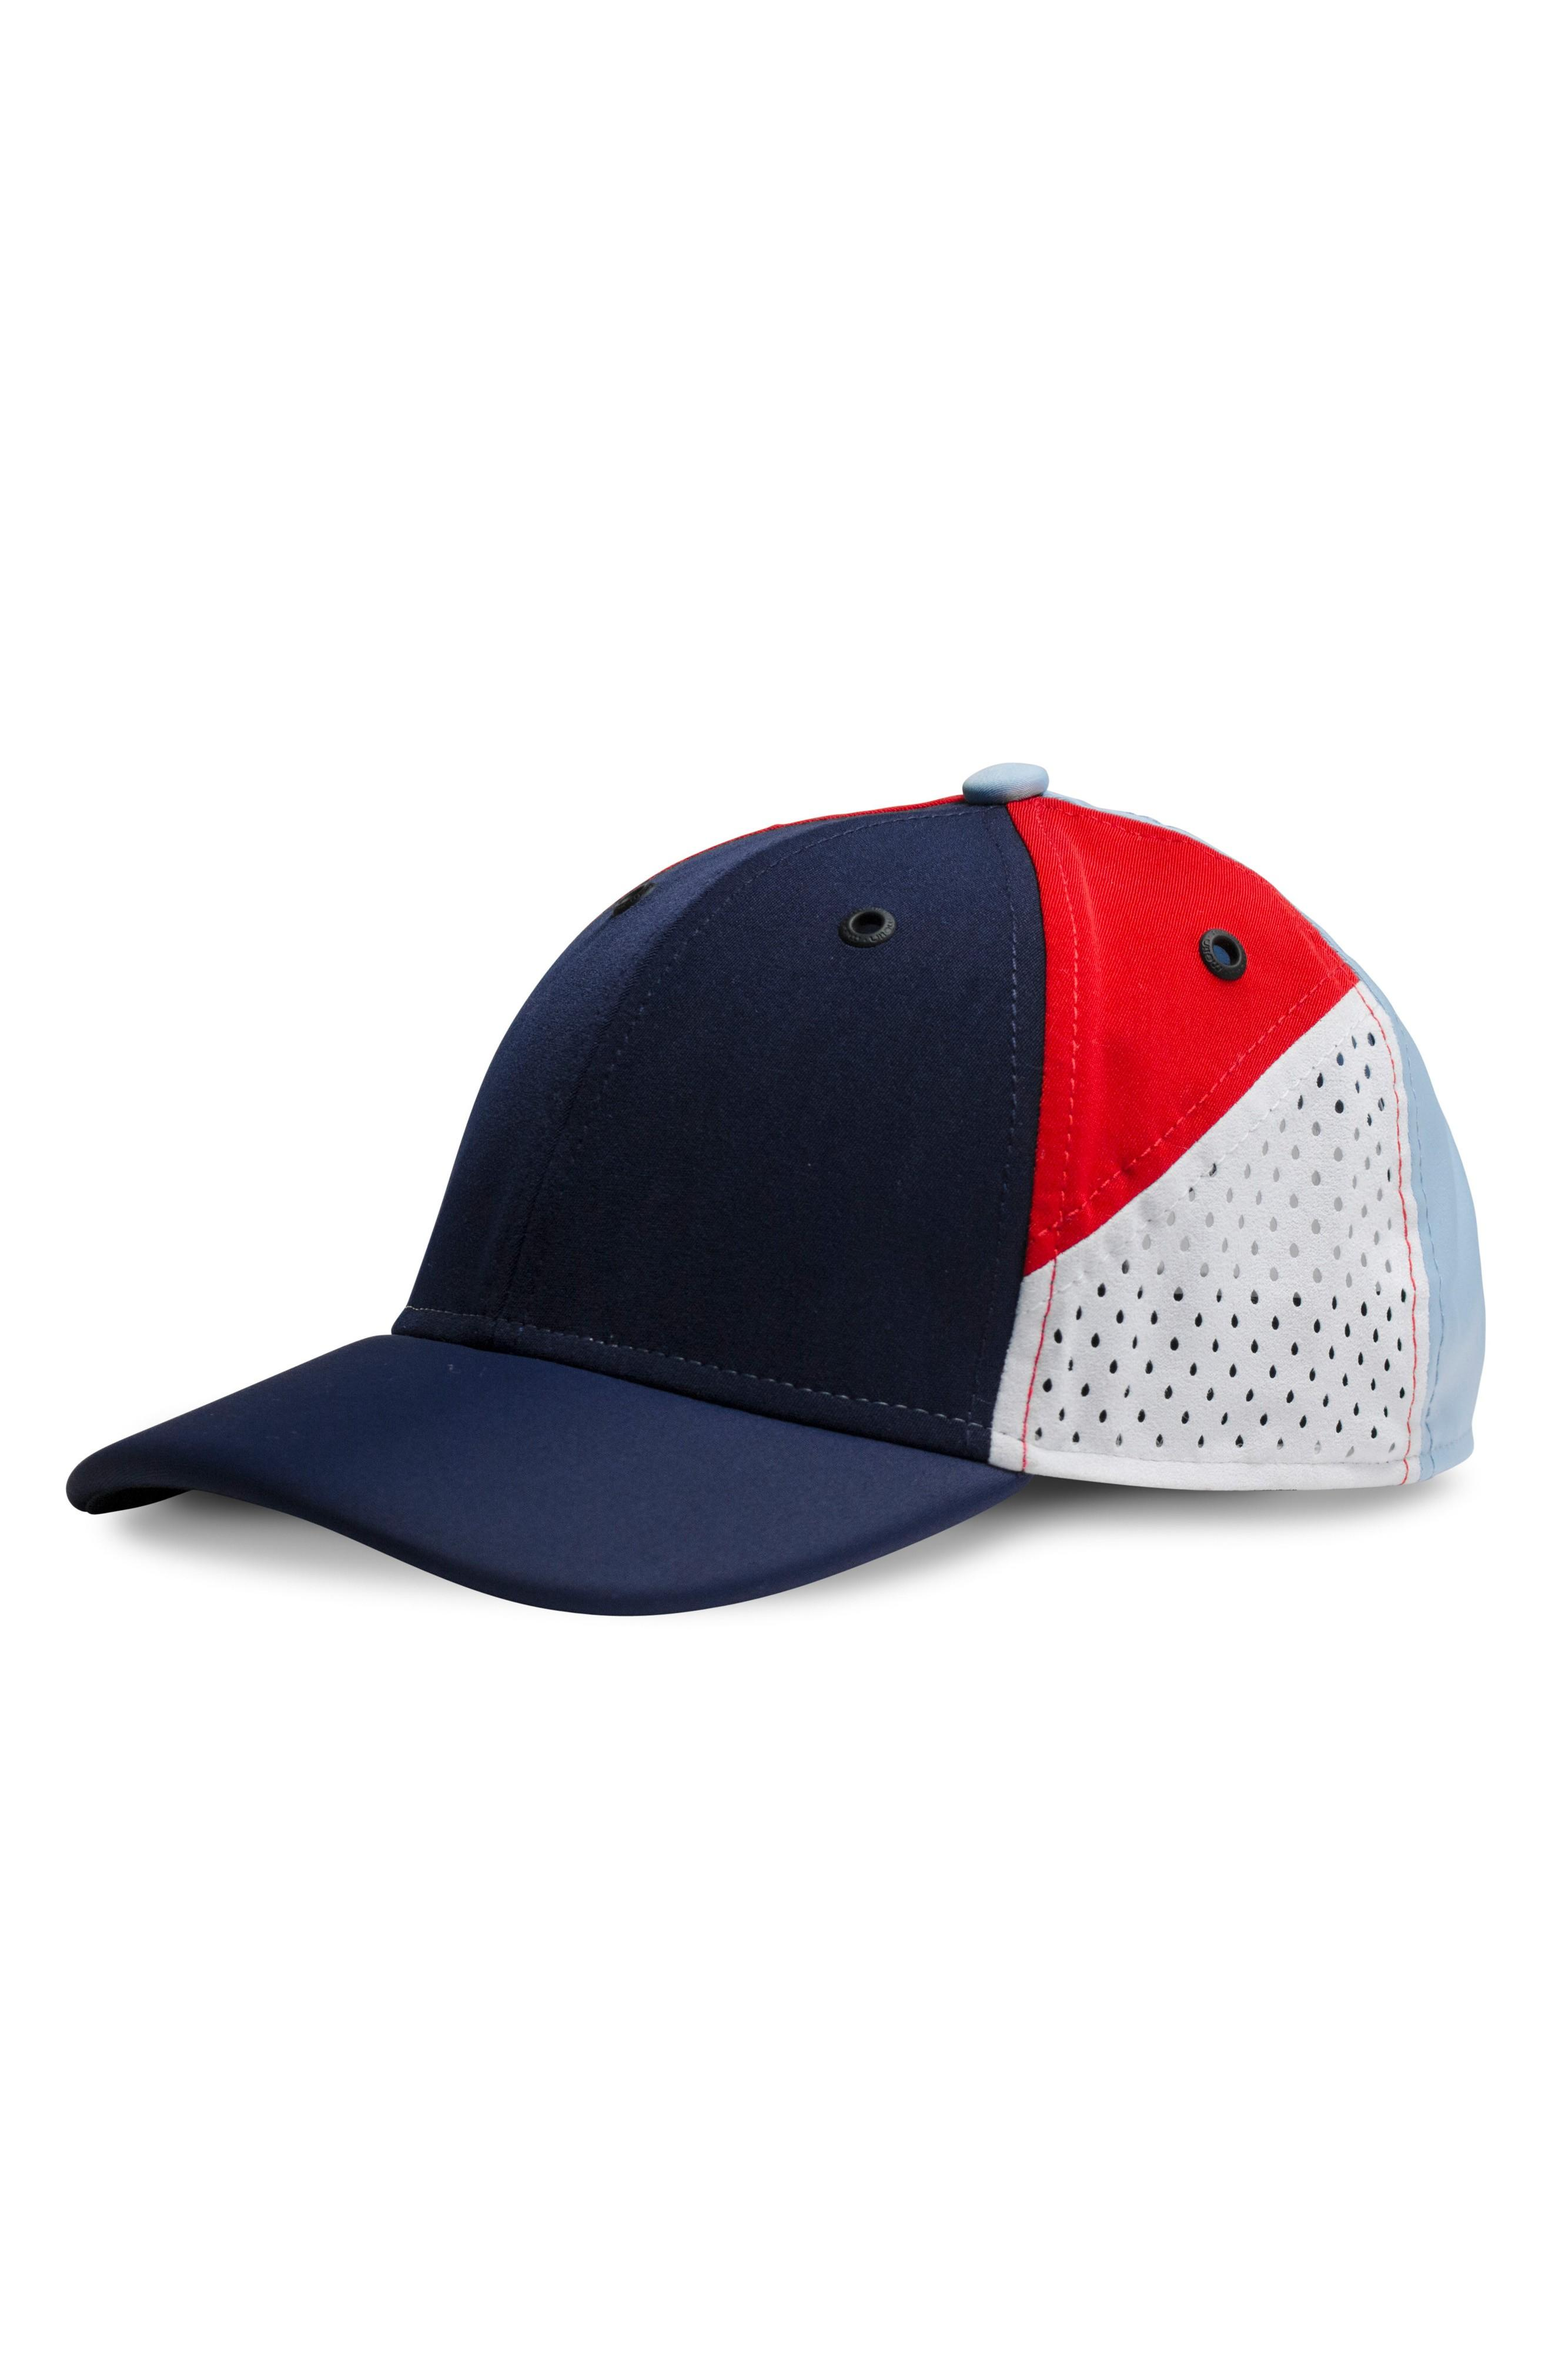 best service 58256 f4ffa Melin The Assault Snapback Baseball Cap - Red In Red  White